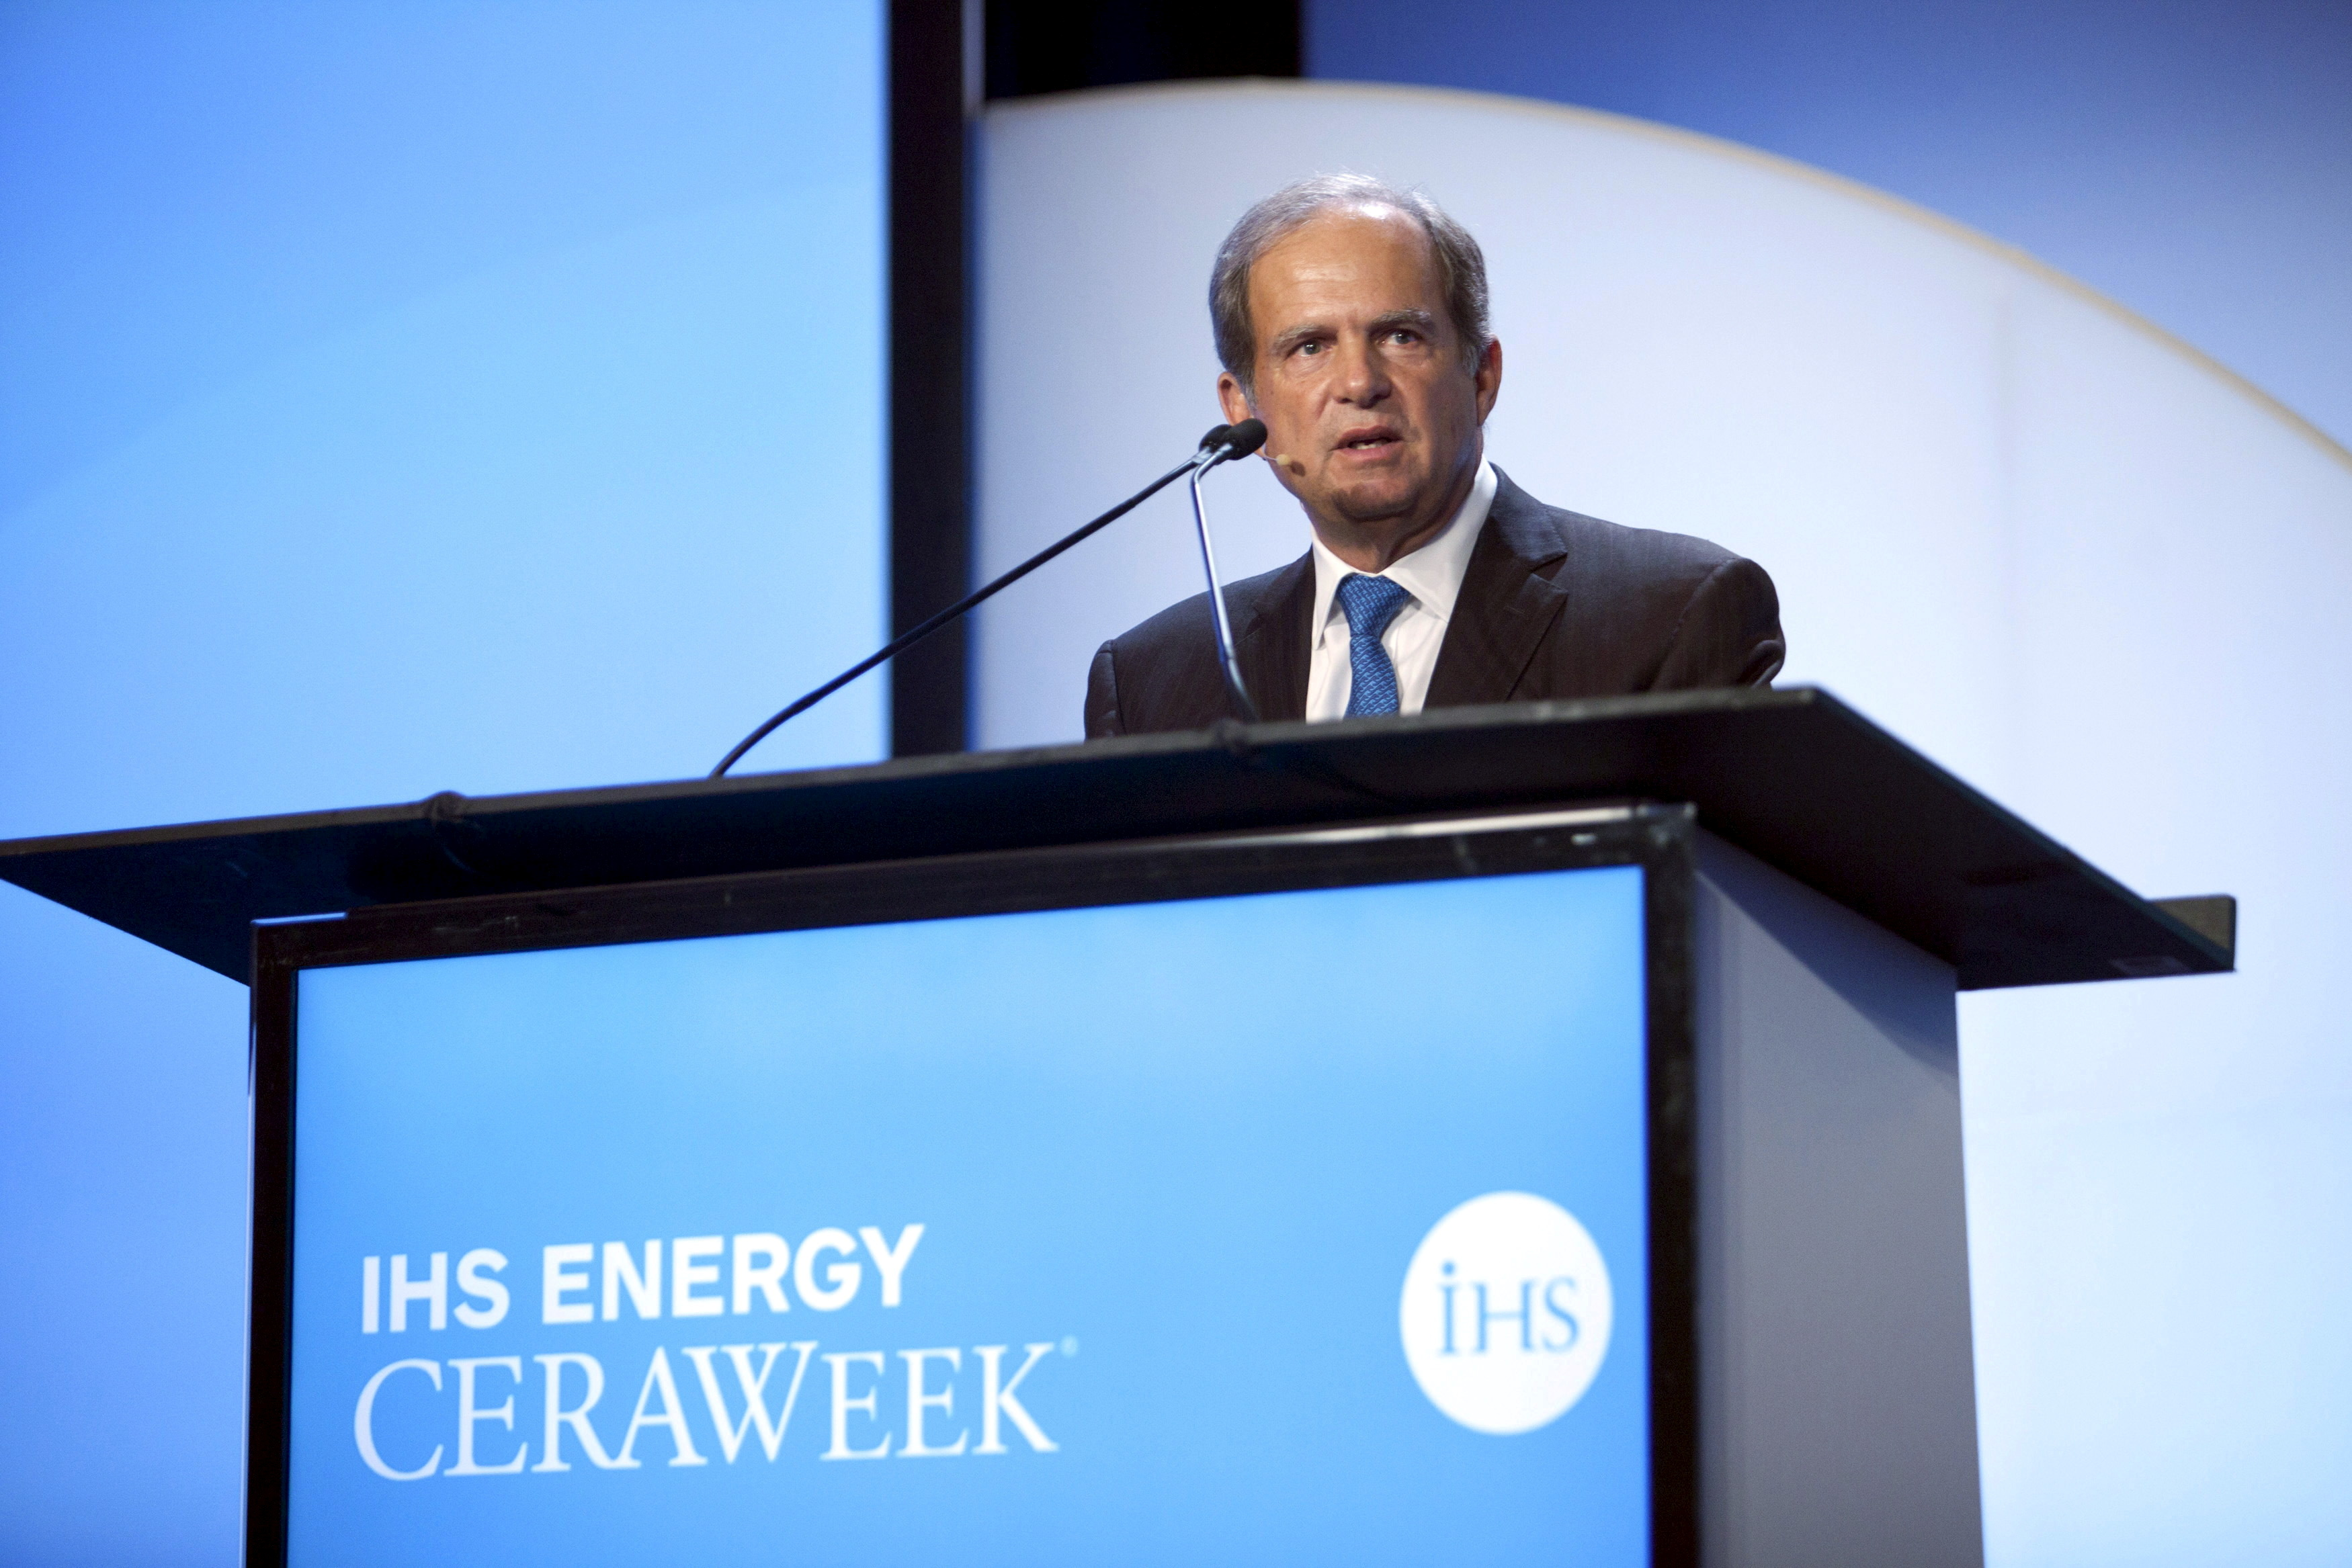 Scott Sheffield, CEO of Pioneer Resources, speaks during the IHS CERAWeek 2015 energy conference in Houston, Texas April 21, 2015.  REUTERS/Daniel Kramer